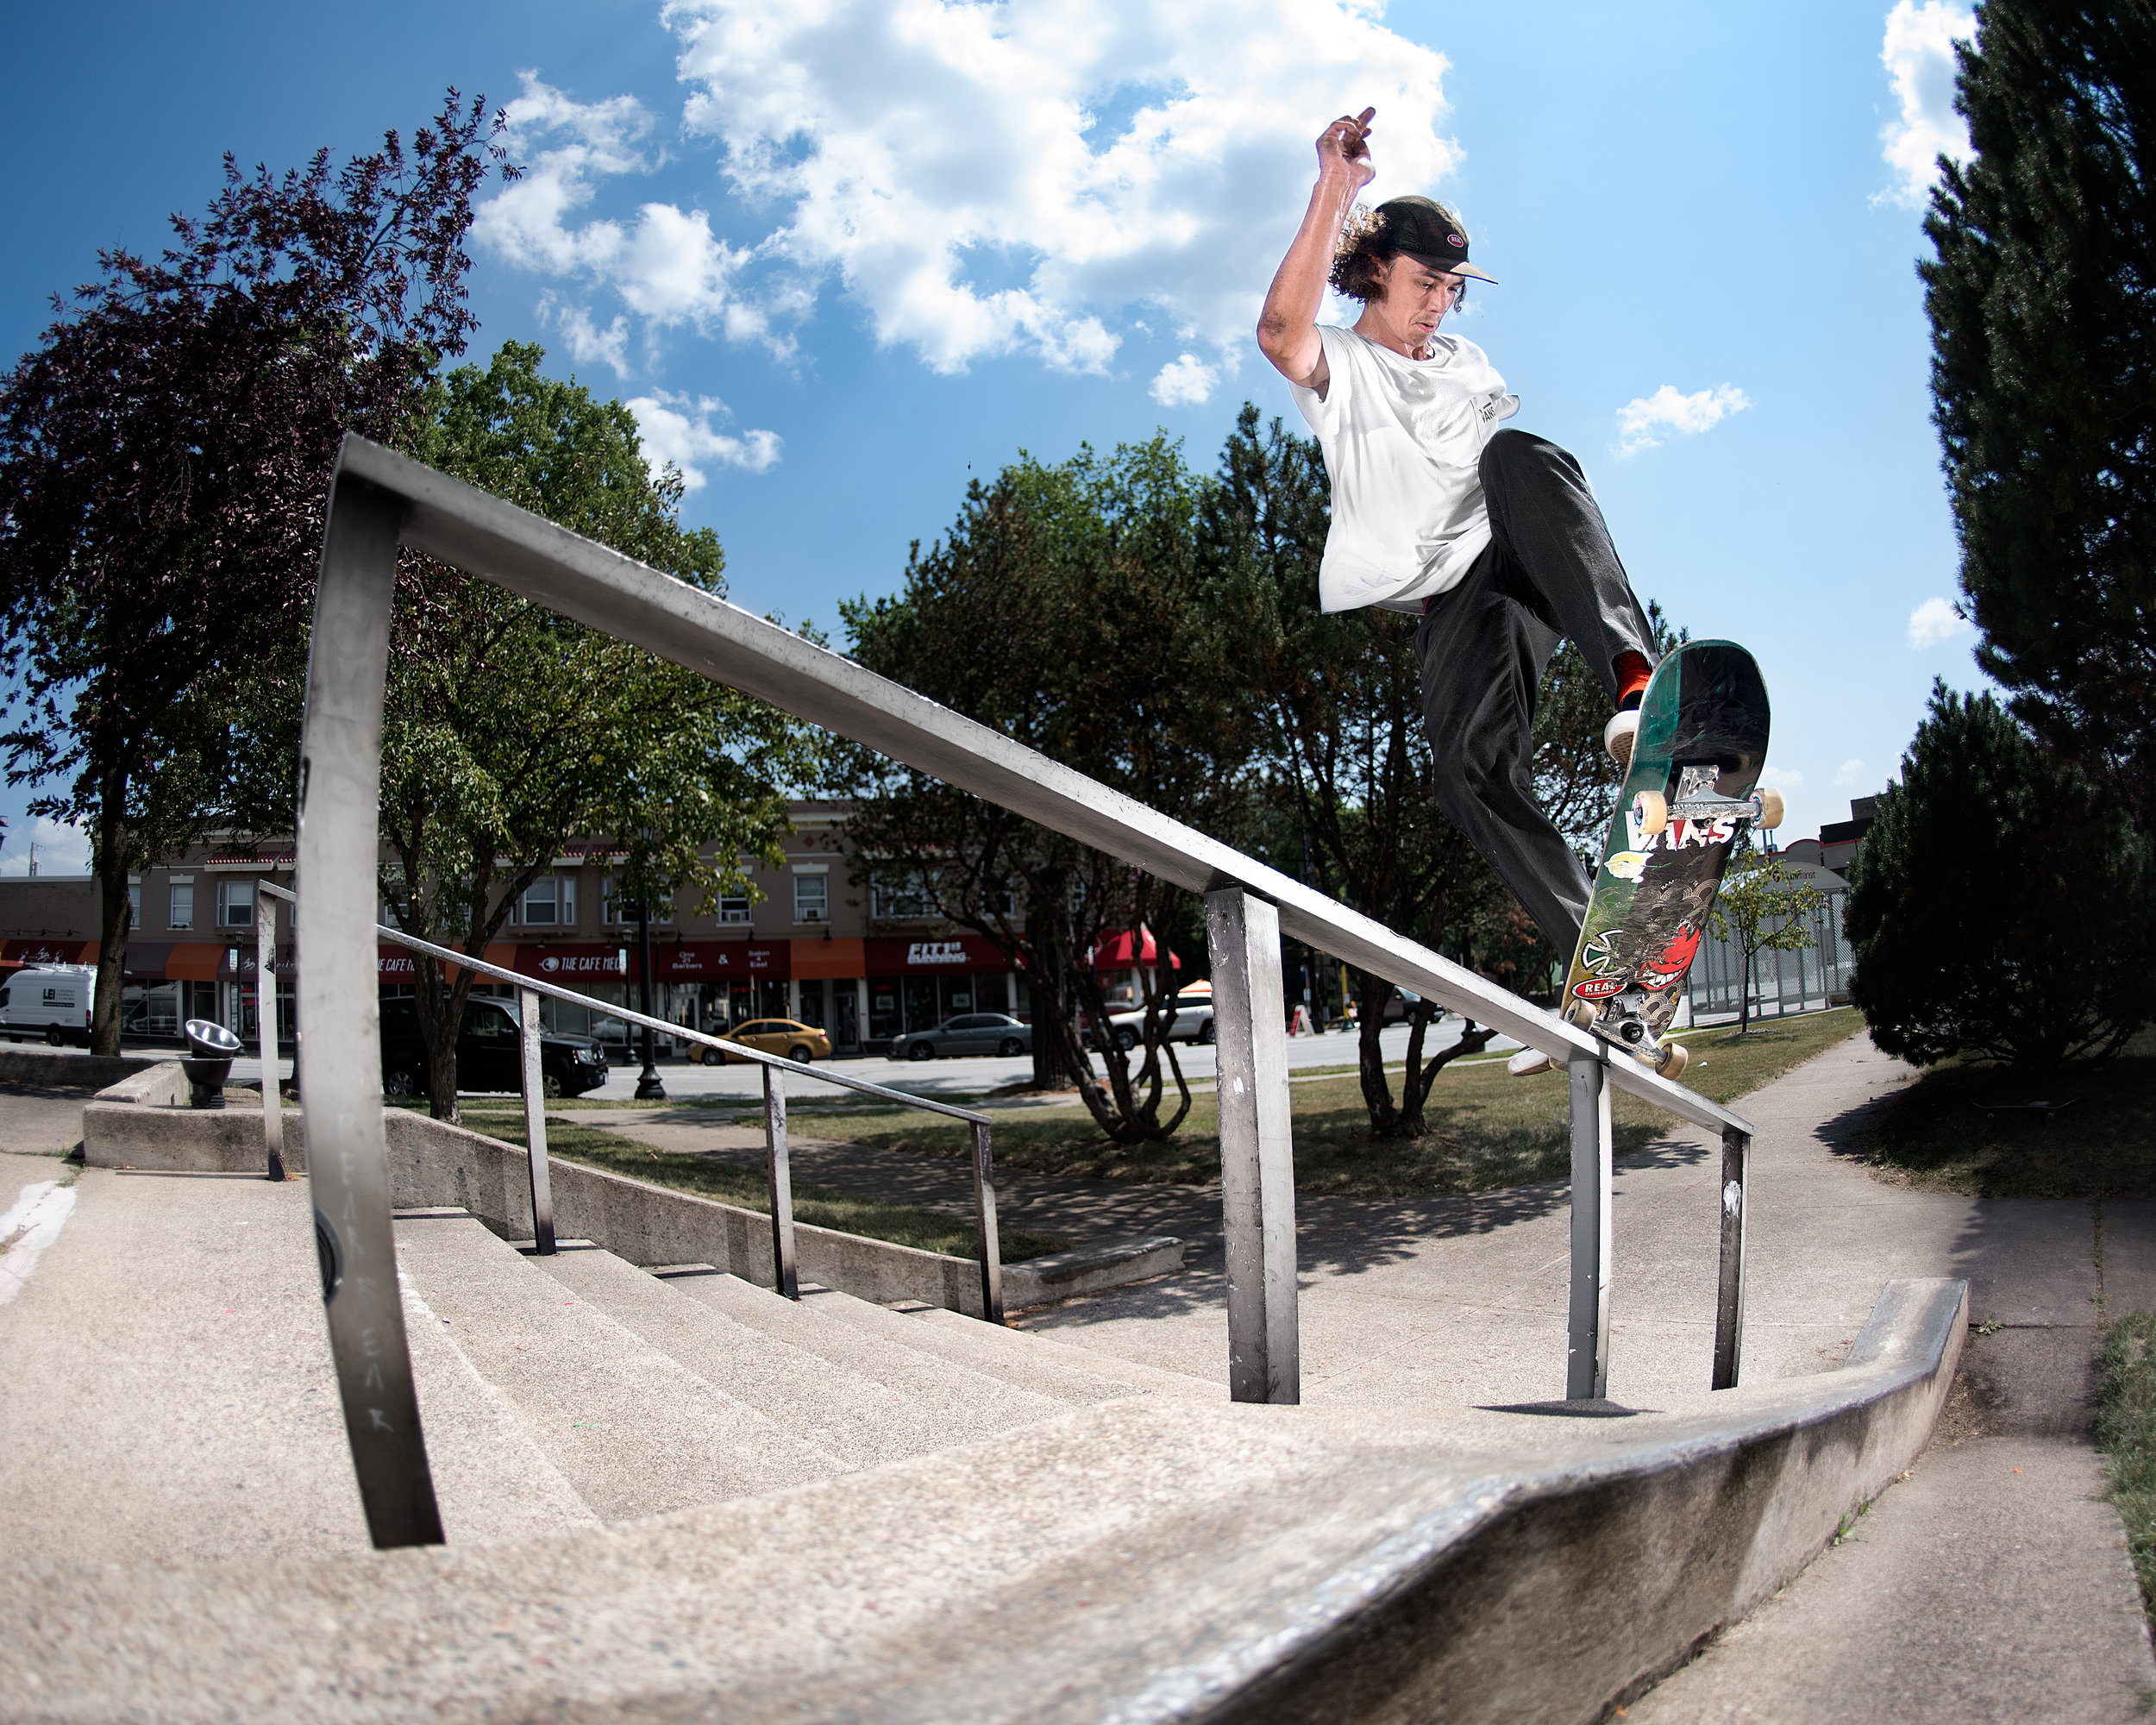 Backside 180 to fakie 5-0.